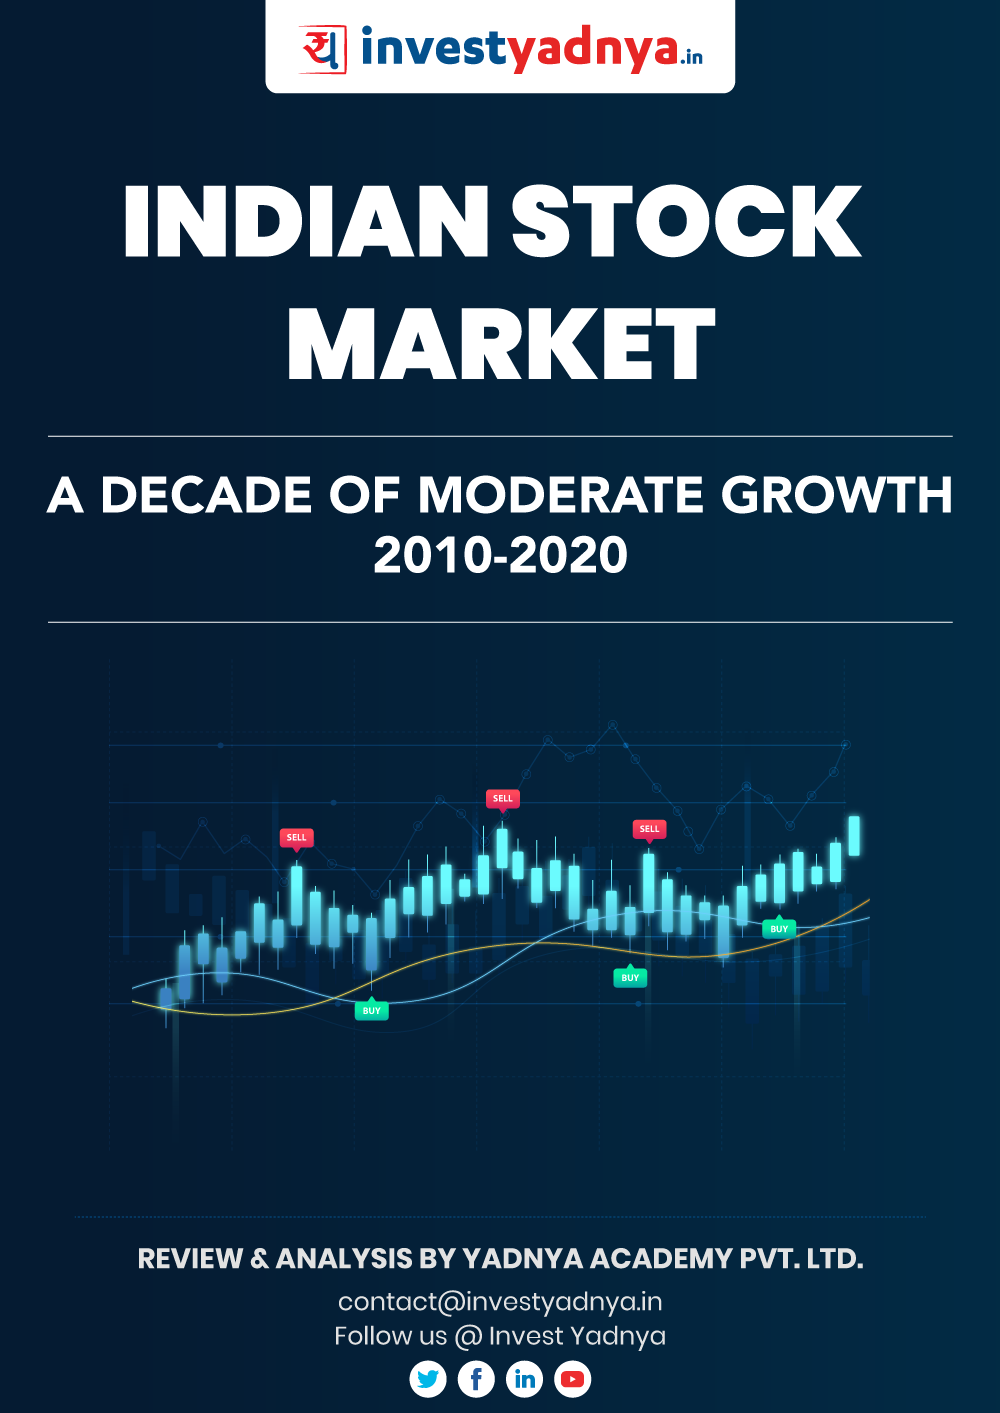 This e-book offers in-depth insights into the Indian Stock Market. It analyses the stock market growth for the last 10 years, based on various parameters. ✔ Indian Stock Market Analysis ✔ Quality Reports